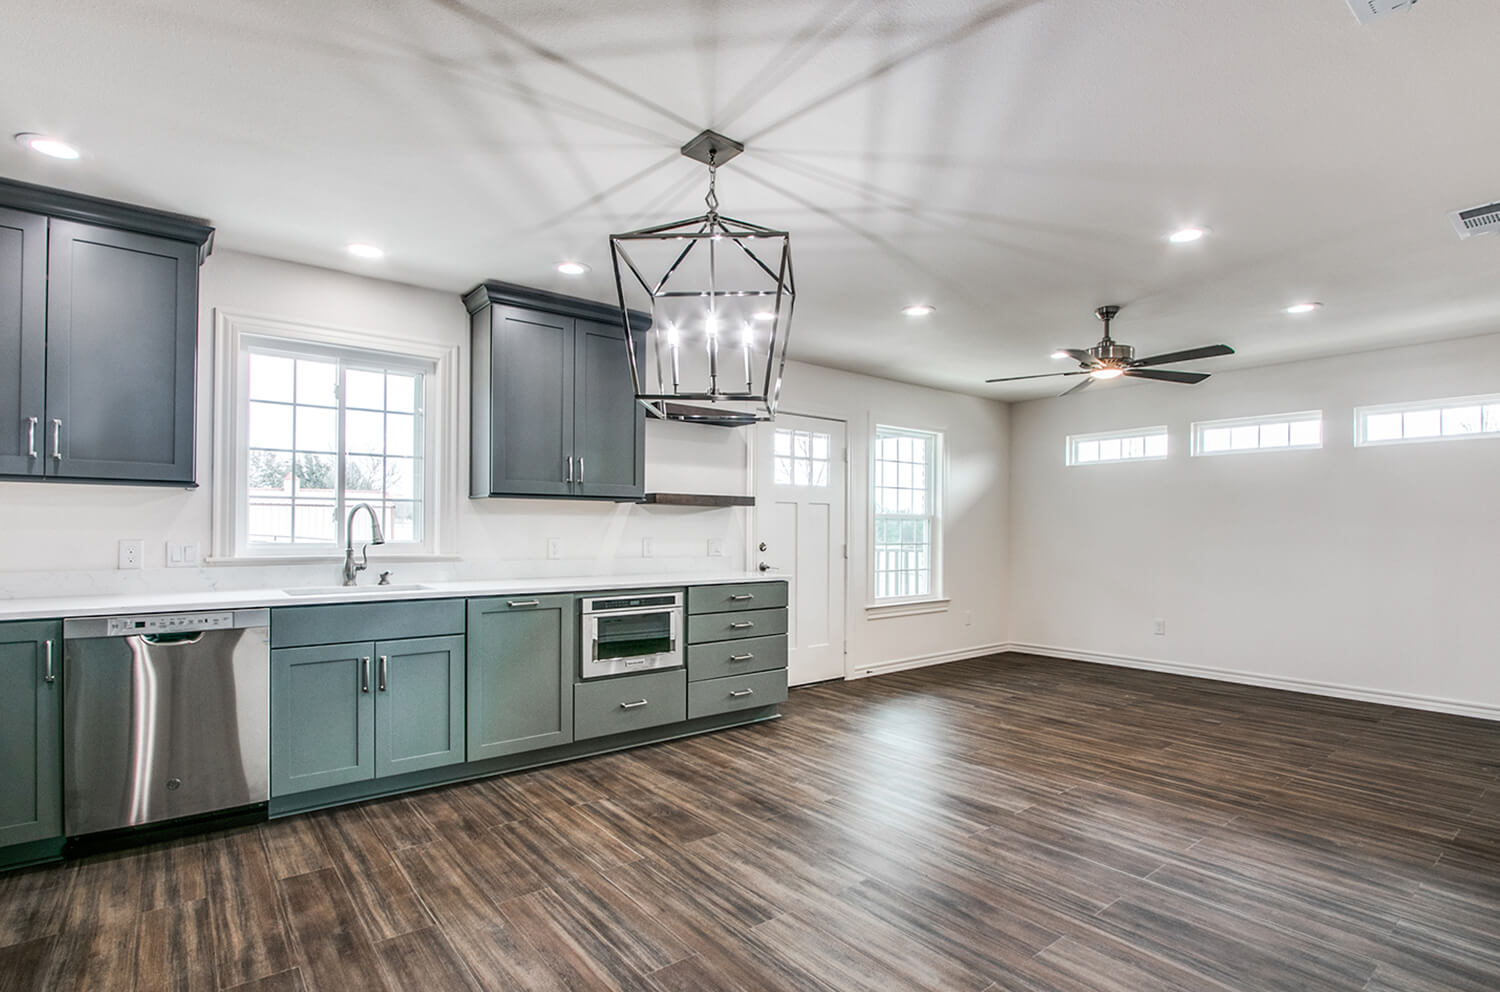 A full home mother-in-law suite remodel in Texas